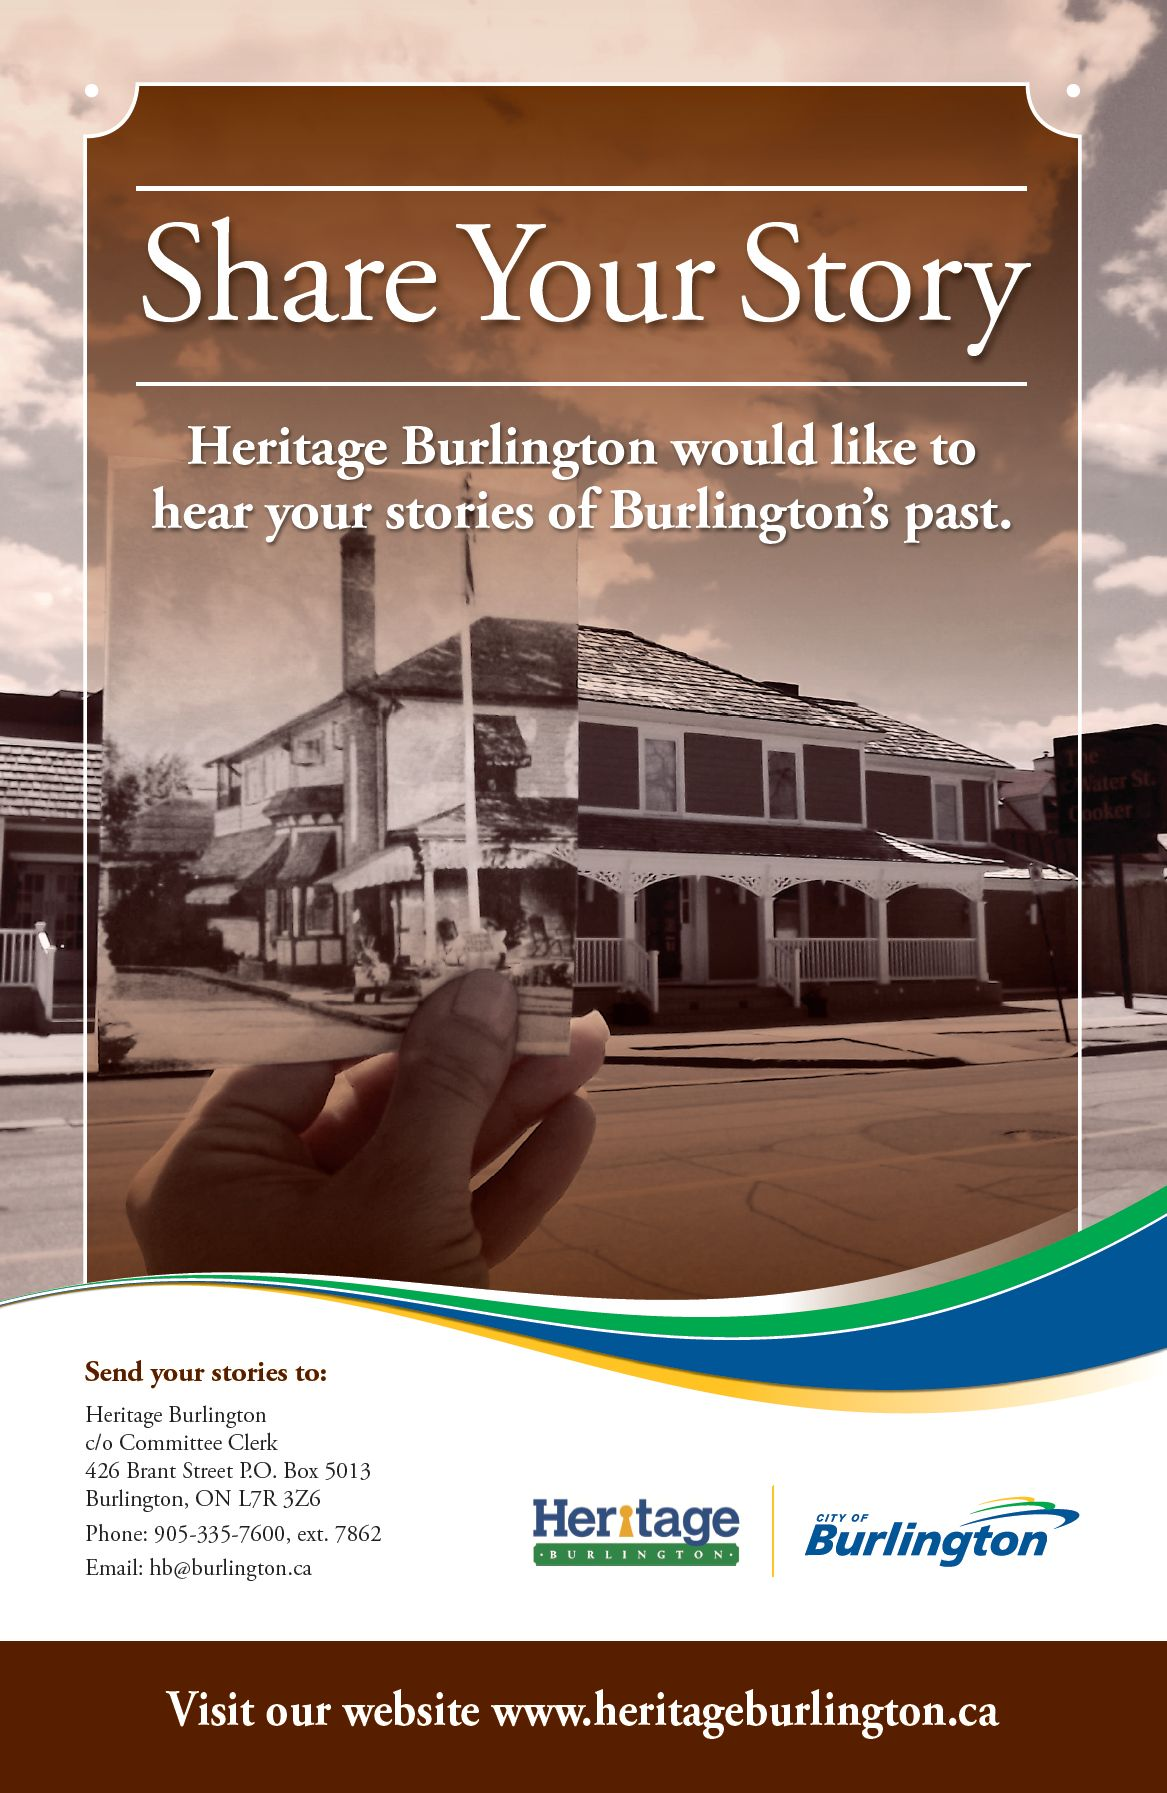 Share your stories about Burlington's history